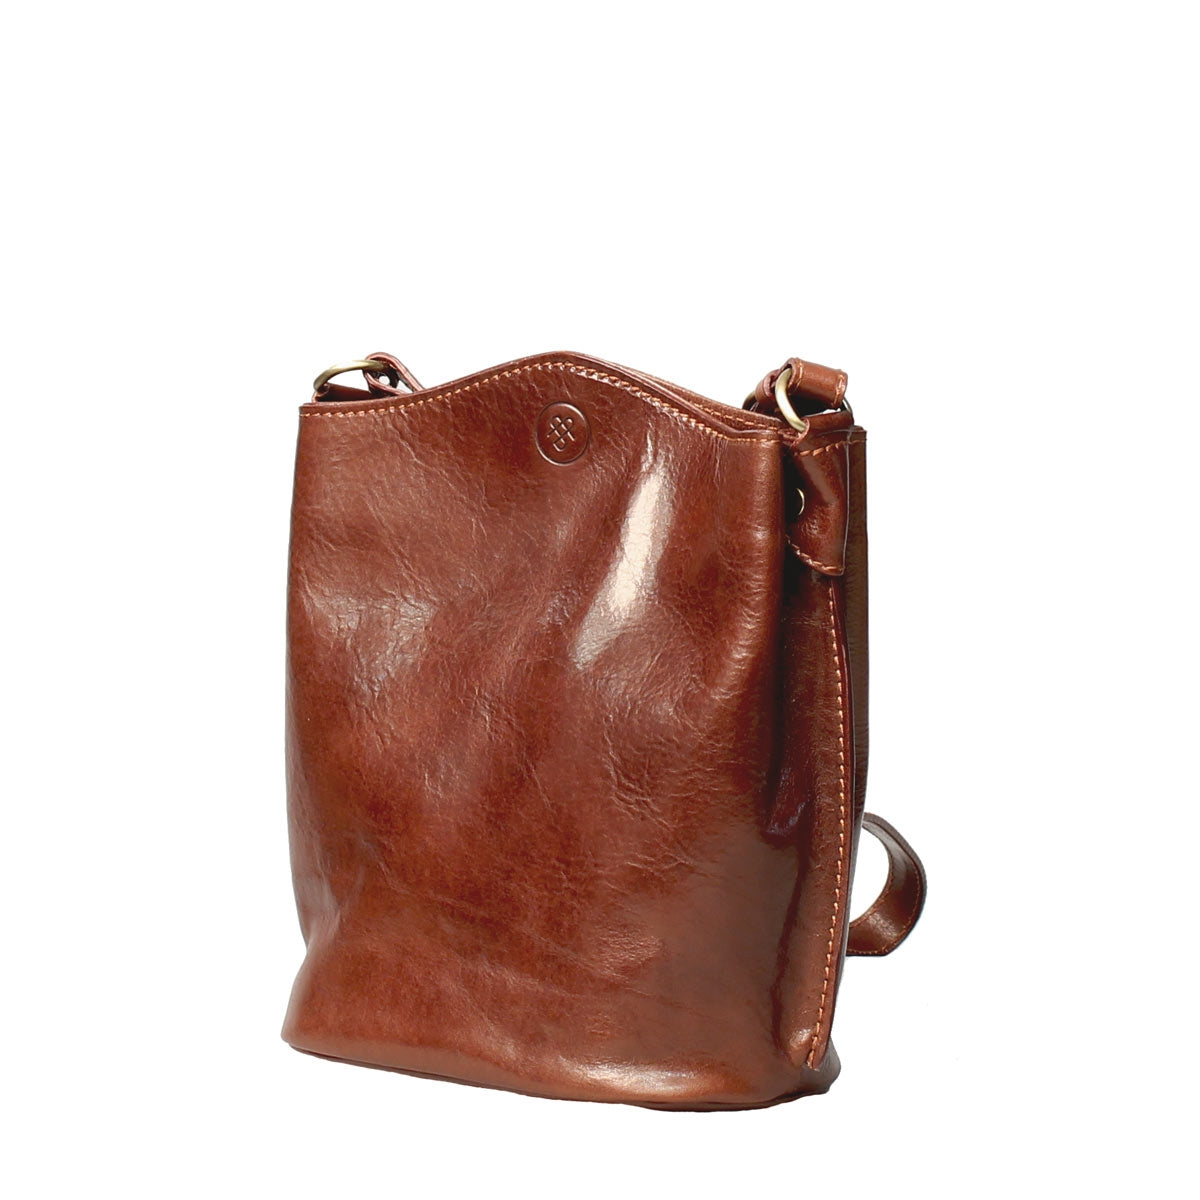 Image 3 of the 'Palermo' Tan Leather Bucket Bag